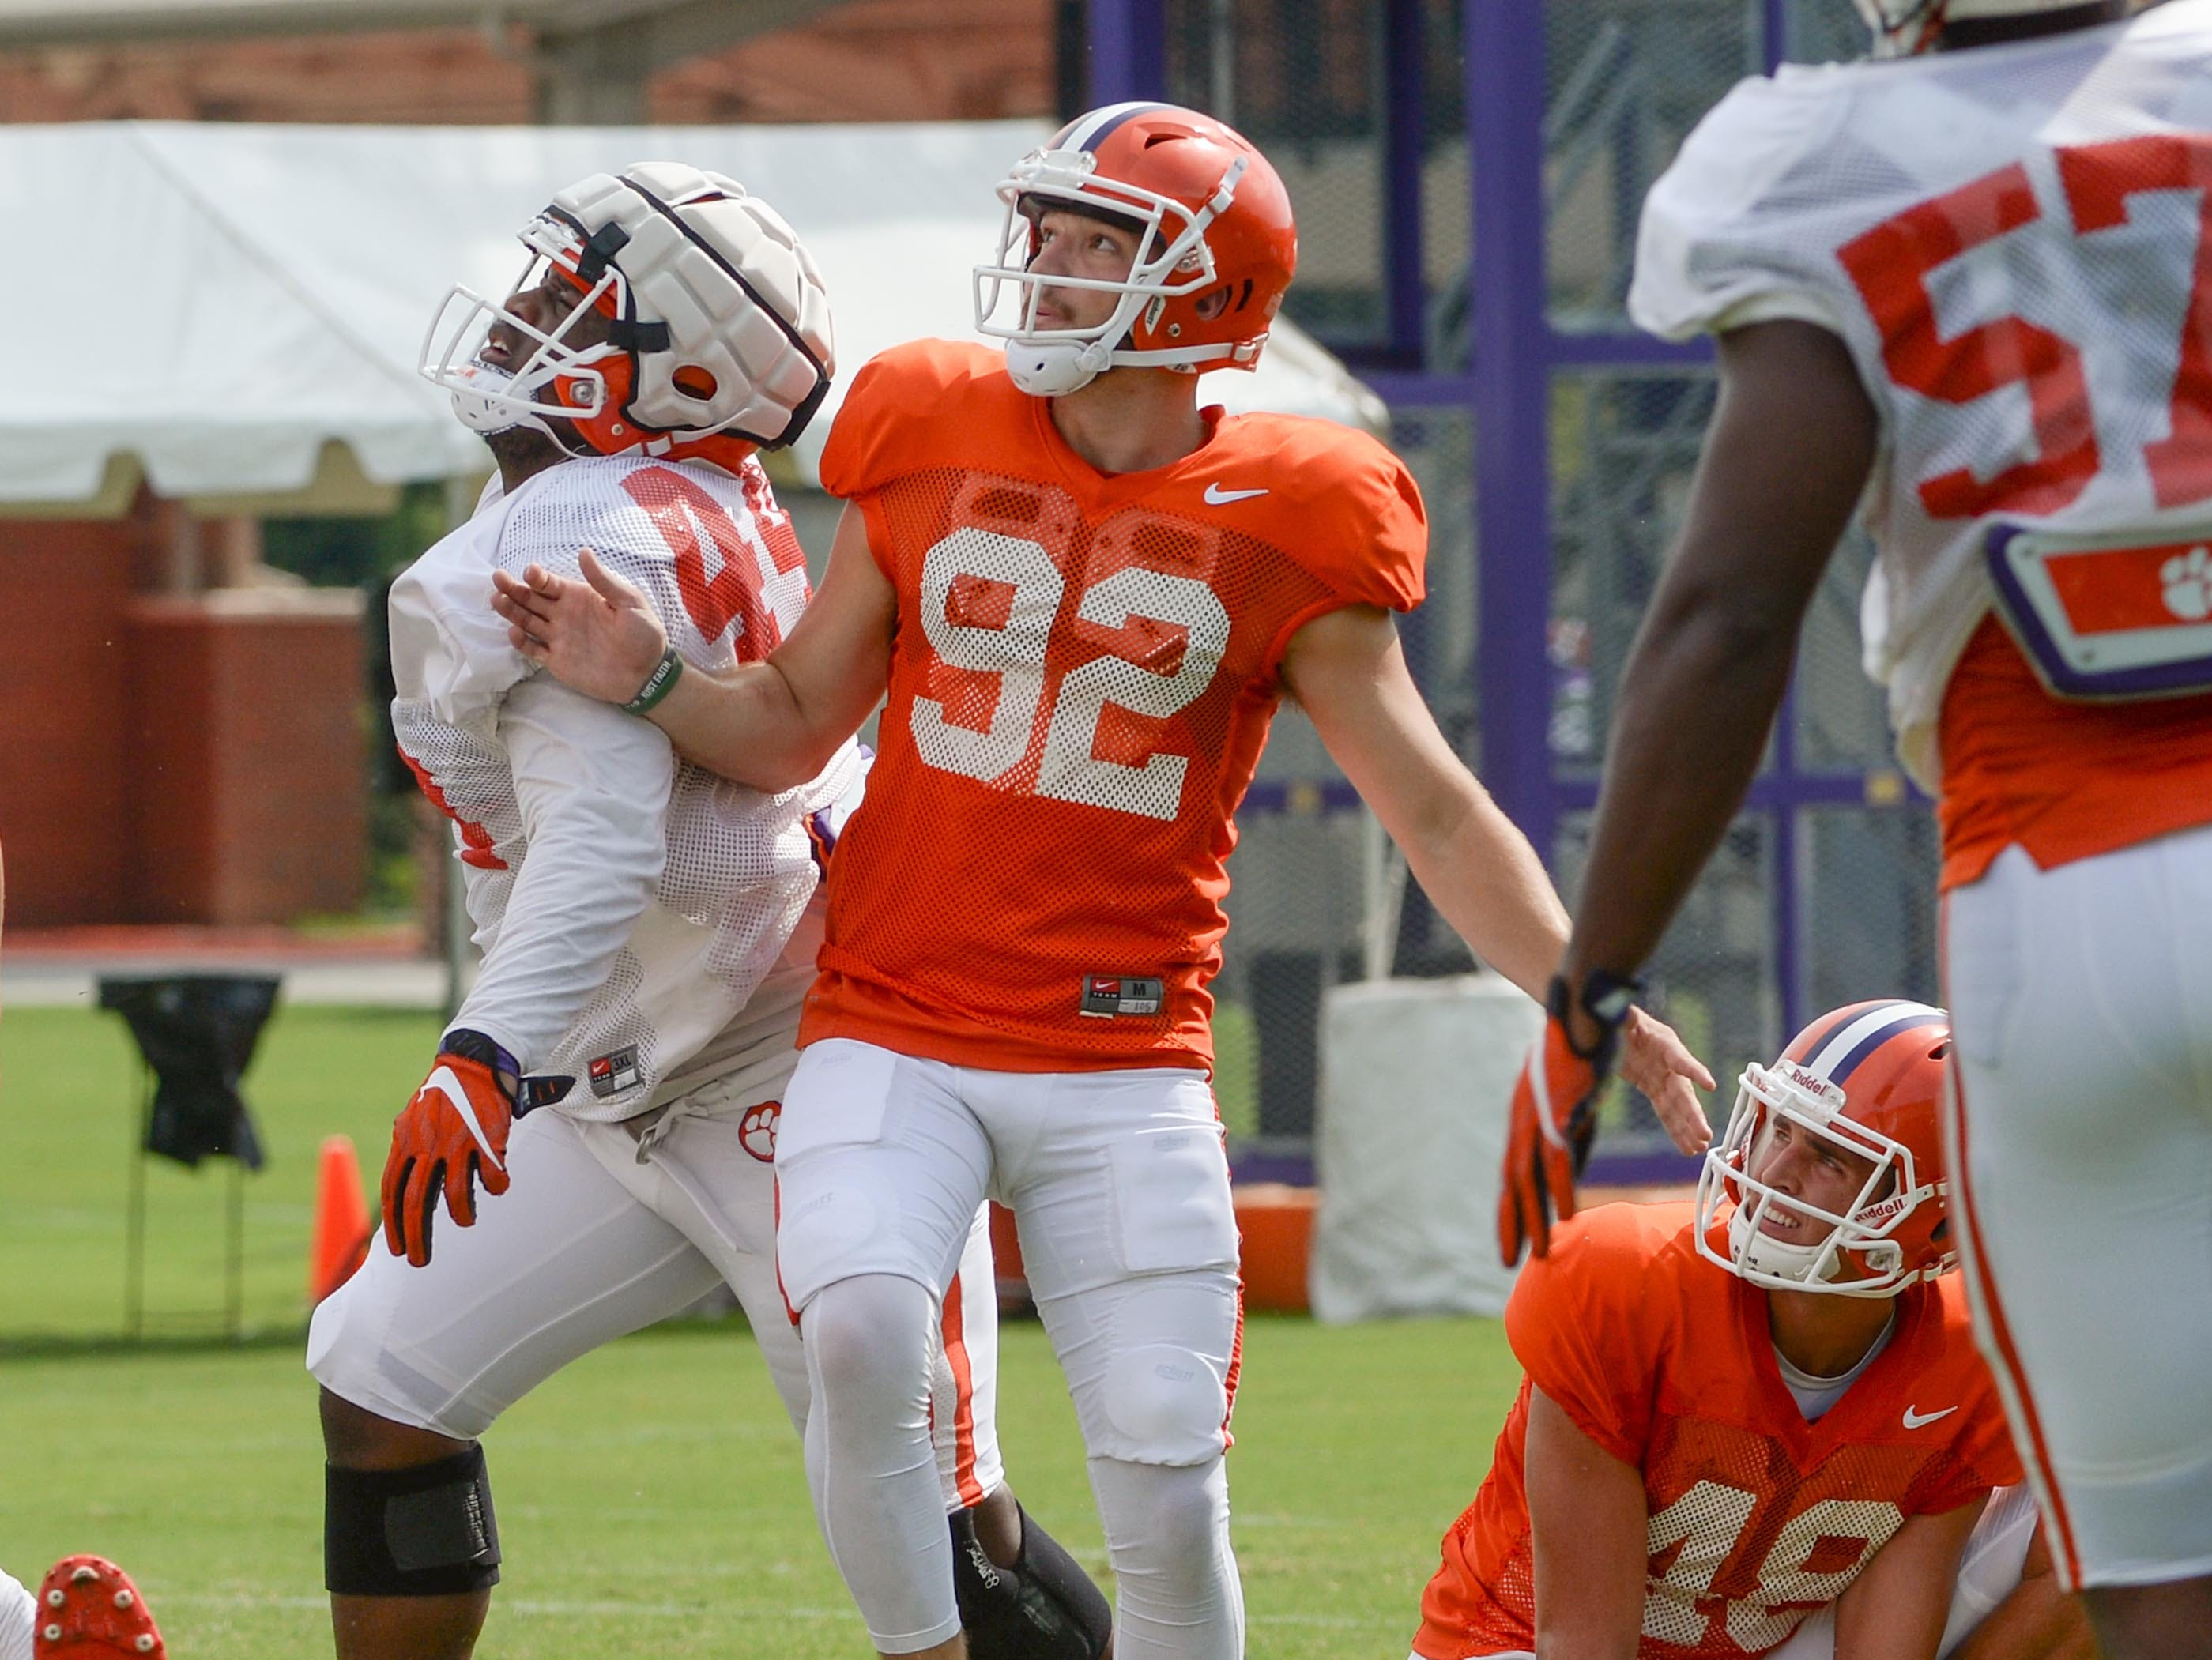 Clemson place kicker Greg Huegel (92) kicks near holder punter Will Spiers (48), right, and defensive tackle Nyles Pinckney (44) during fall practice in Clemson on Wednesday.